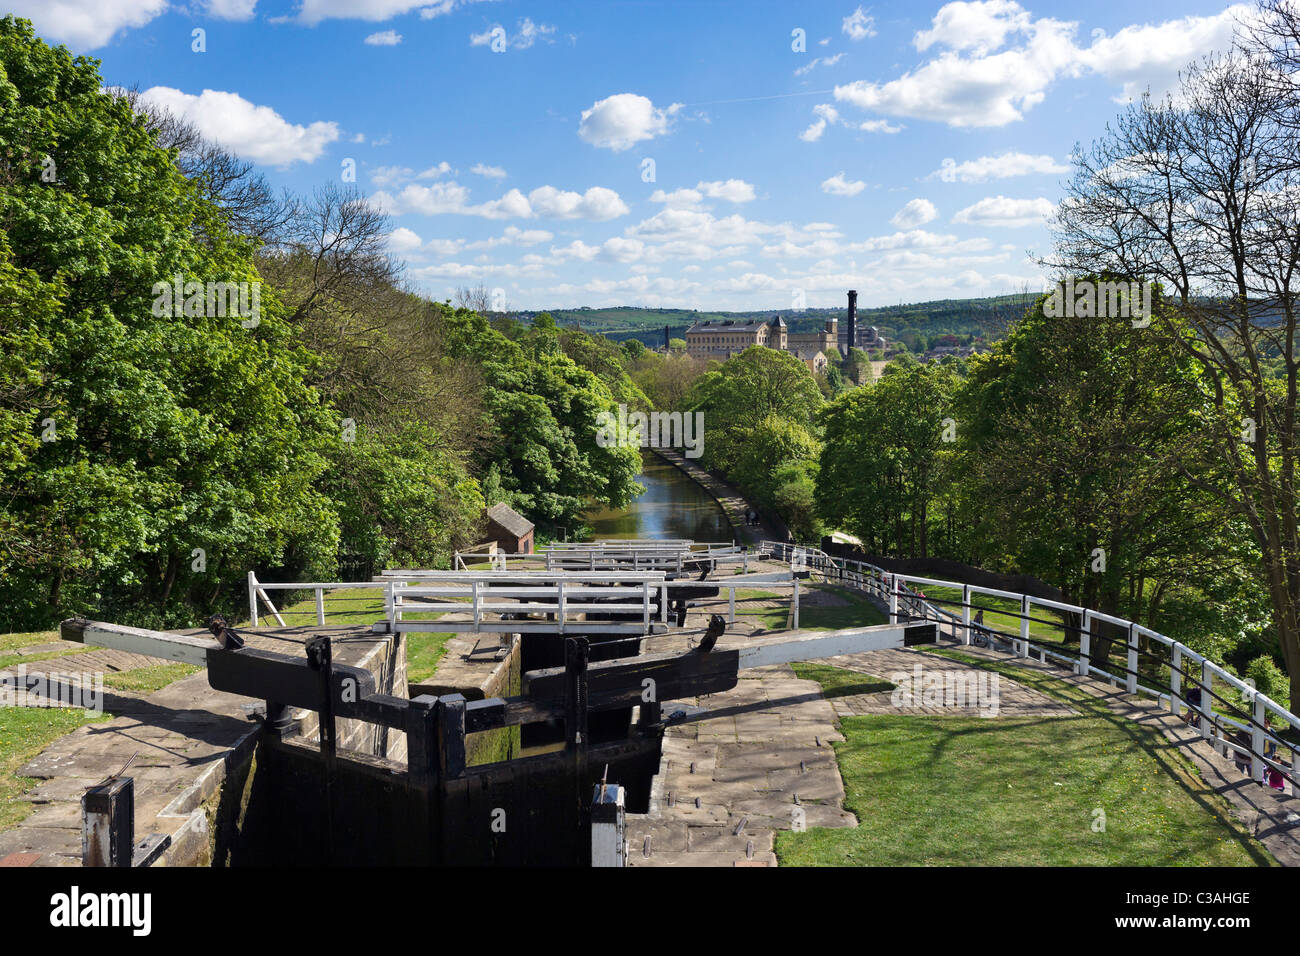 View over the Leeds and Liverpool Canal from the top of Five Rise Locks, Bingley, West Yorkshire, UK - Stock Image